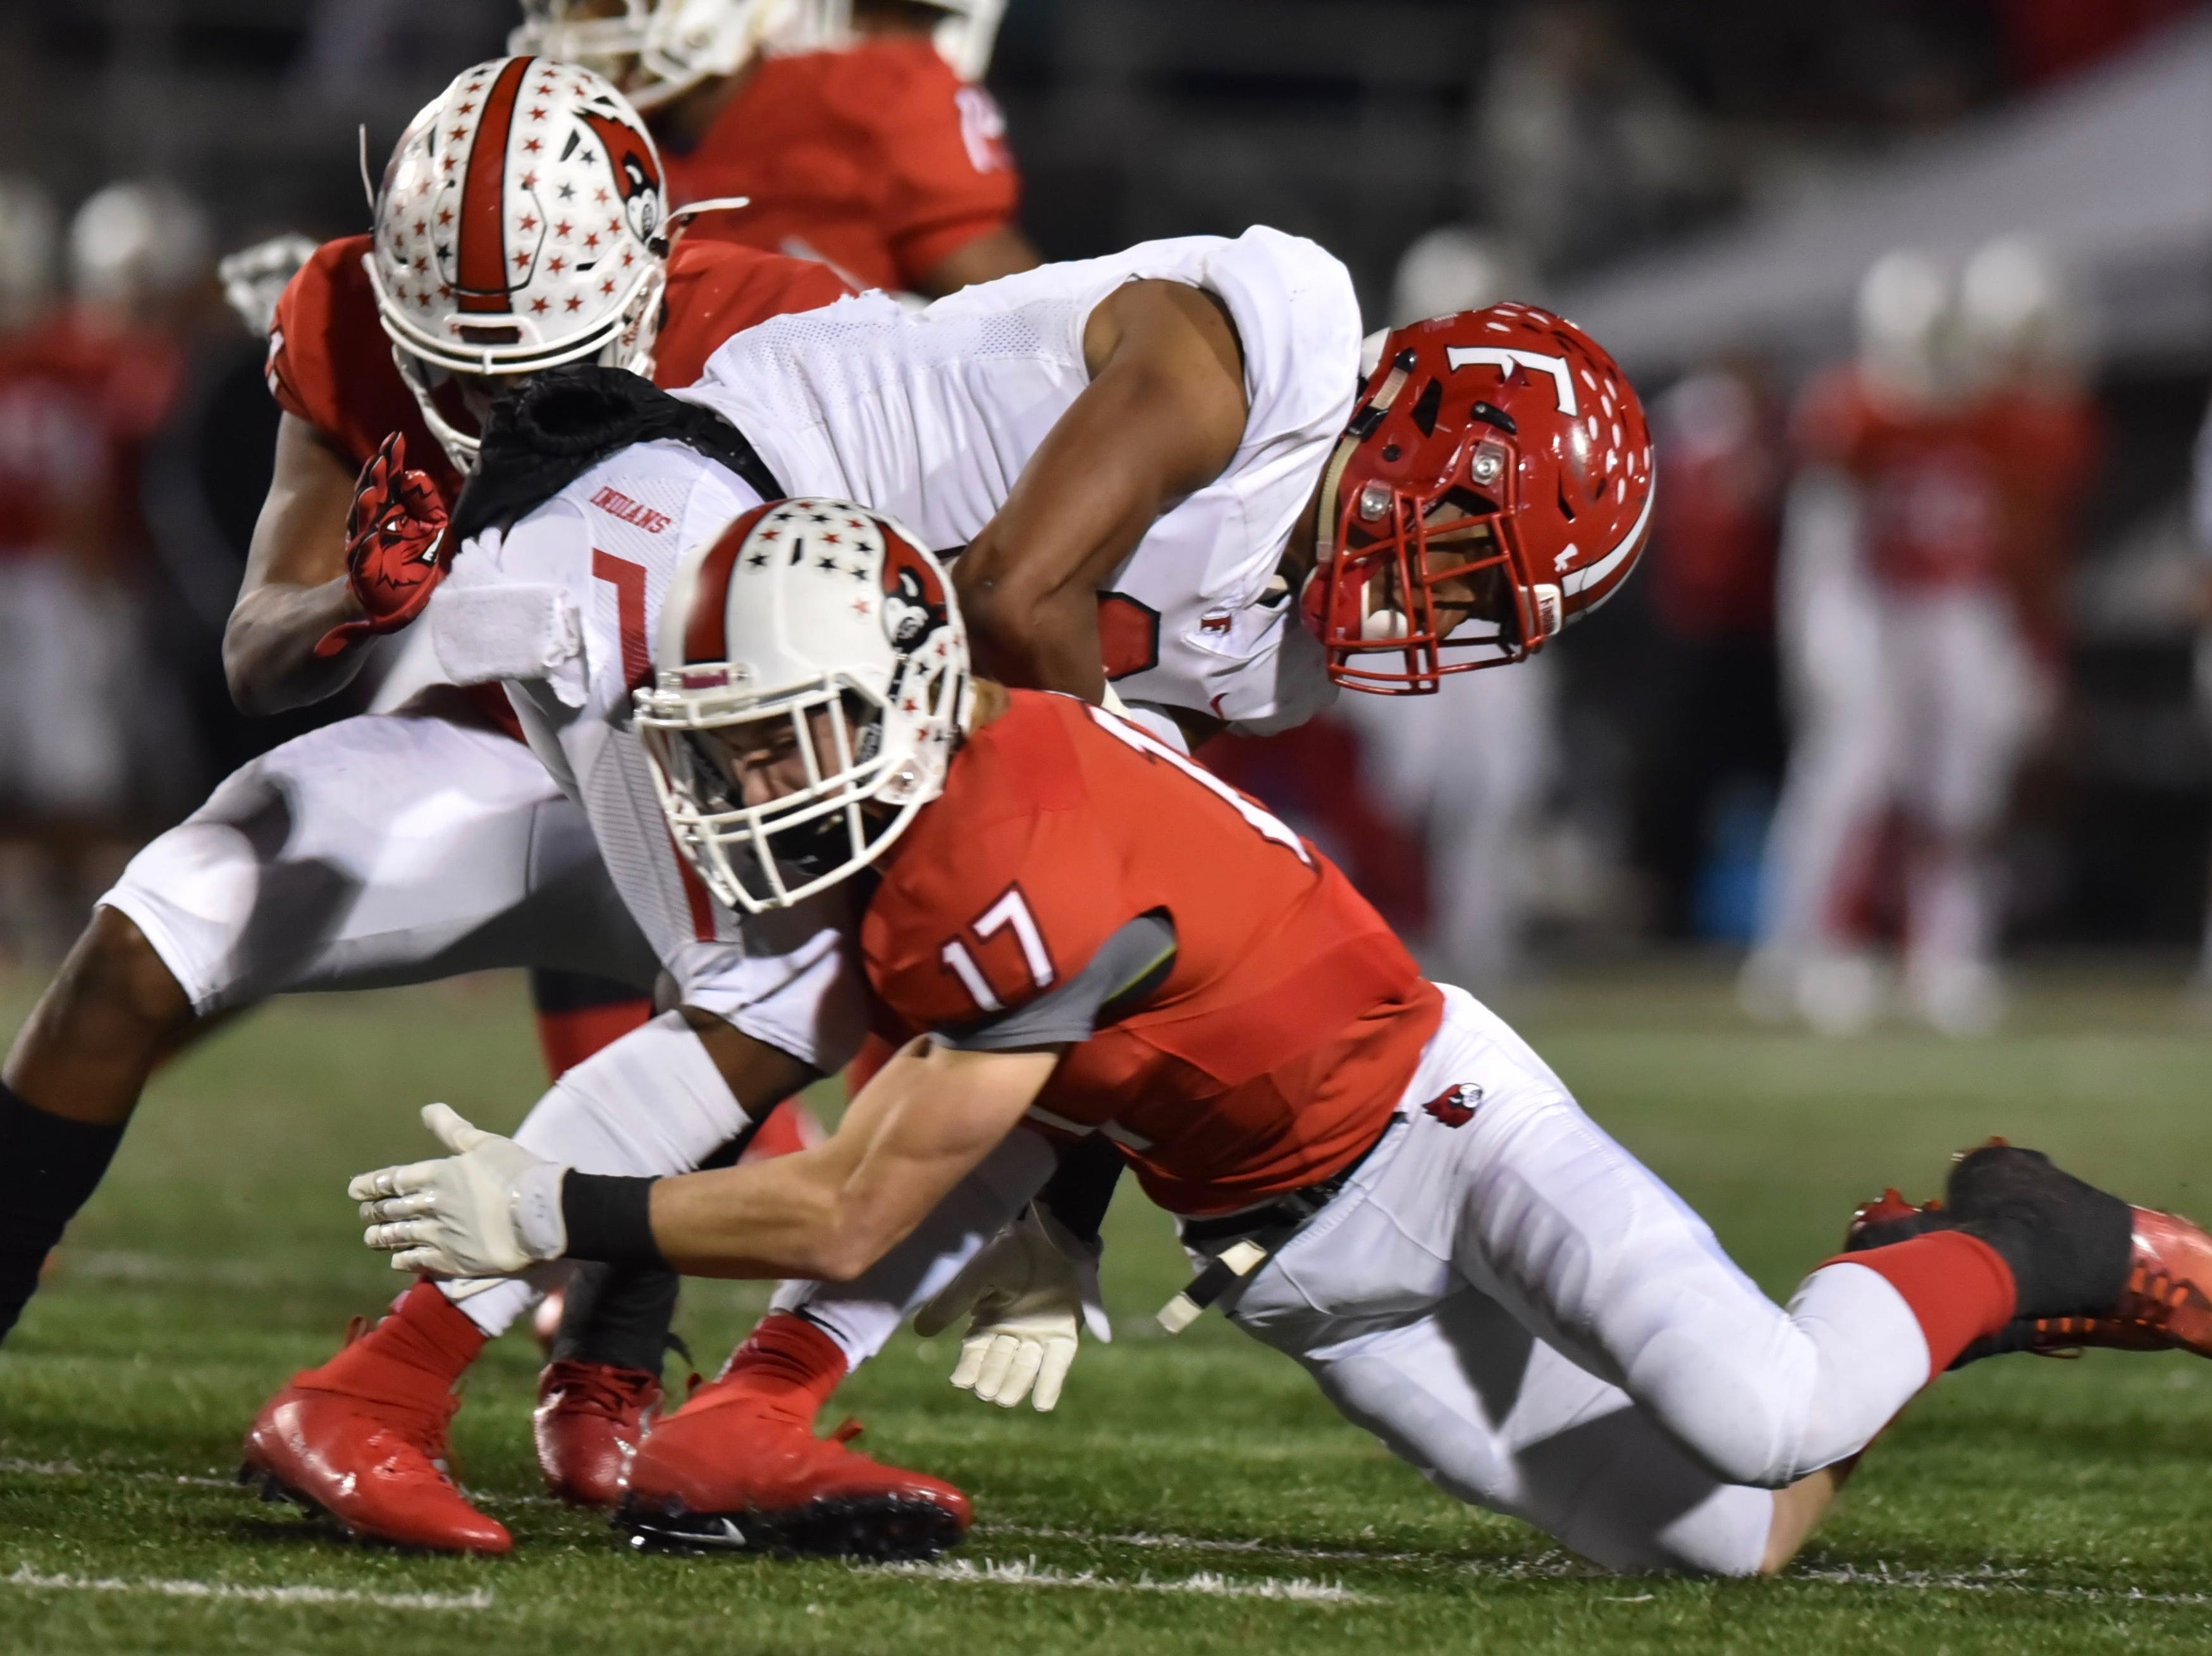 Colerain's Lawson Sandusky makes an open field tackle on a kickoff against Fairfield Friday, Oct. 19, 2018 at Colerain High School